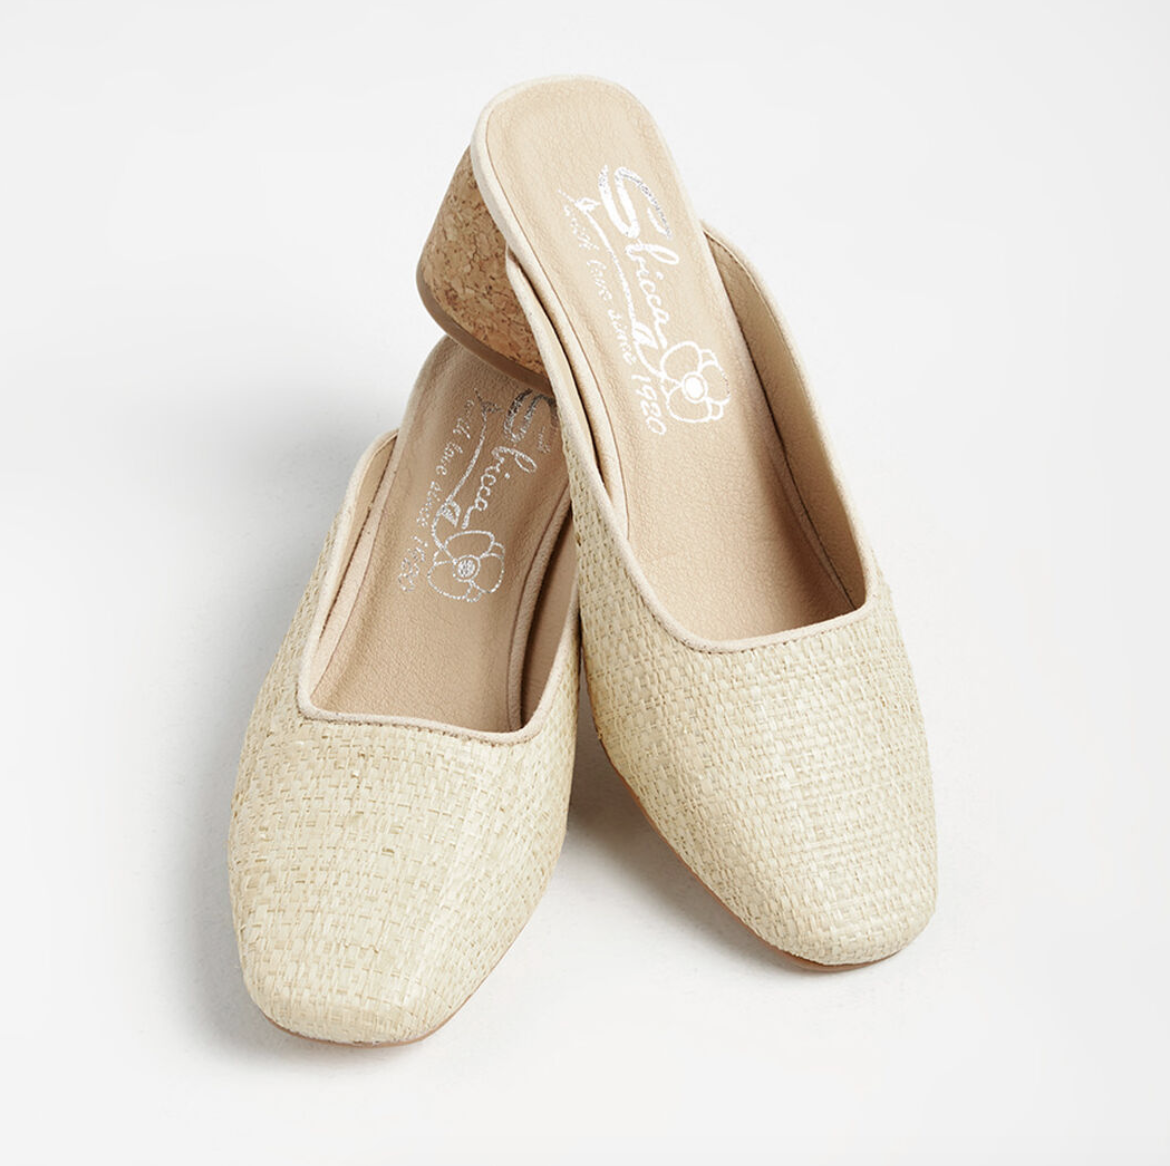 A pair of low-heeled ivory woven mules